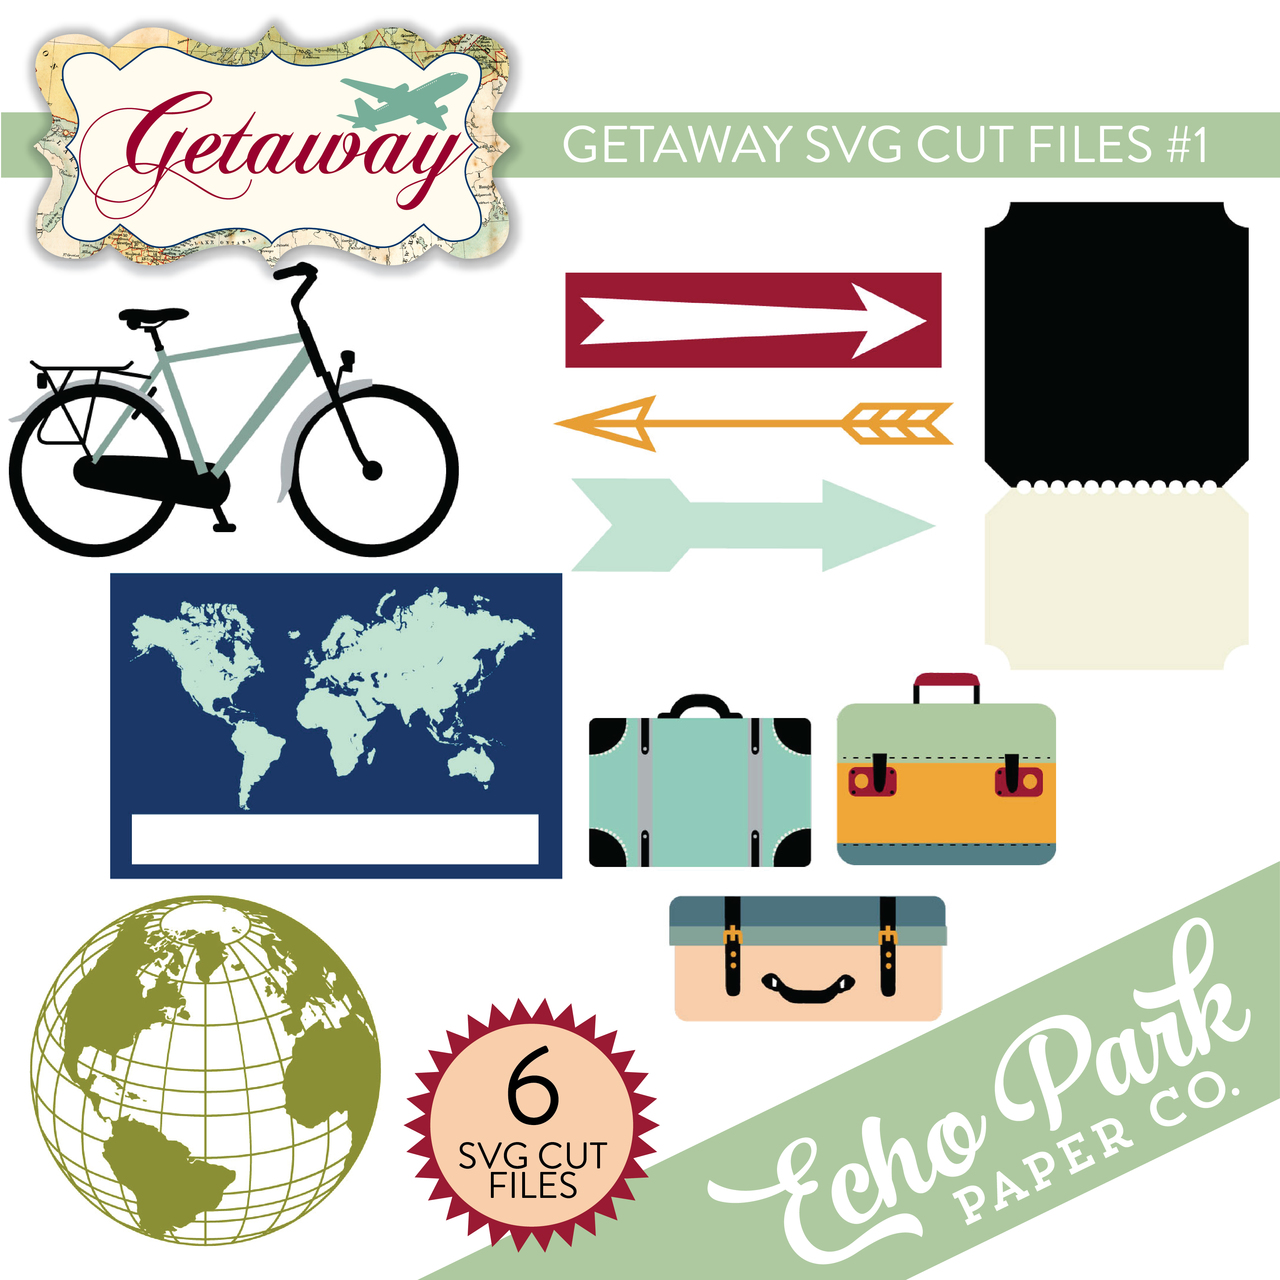 Getaway SVG Cut Files #1